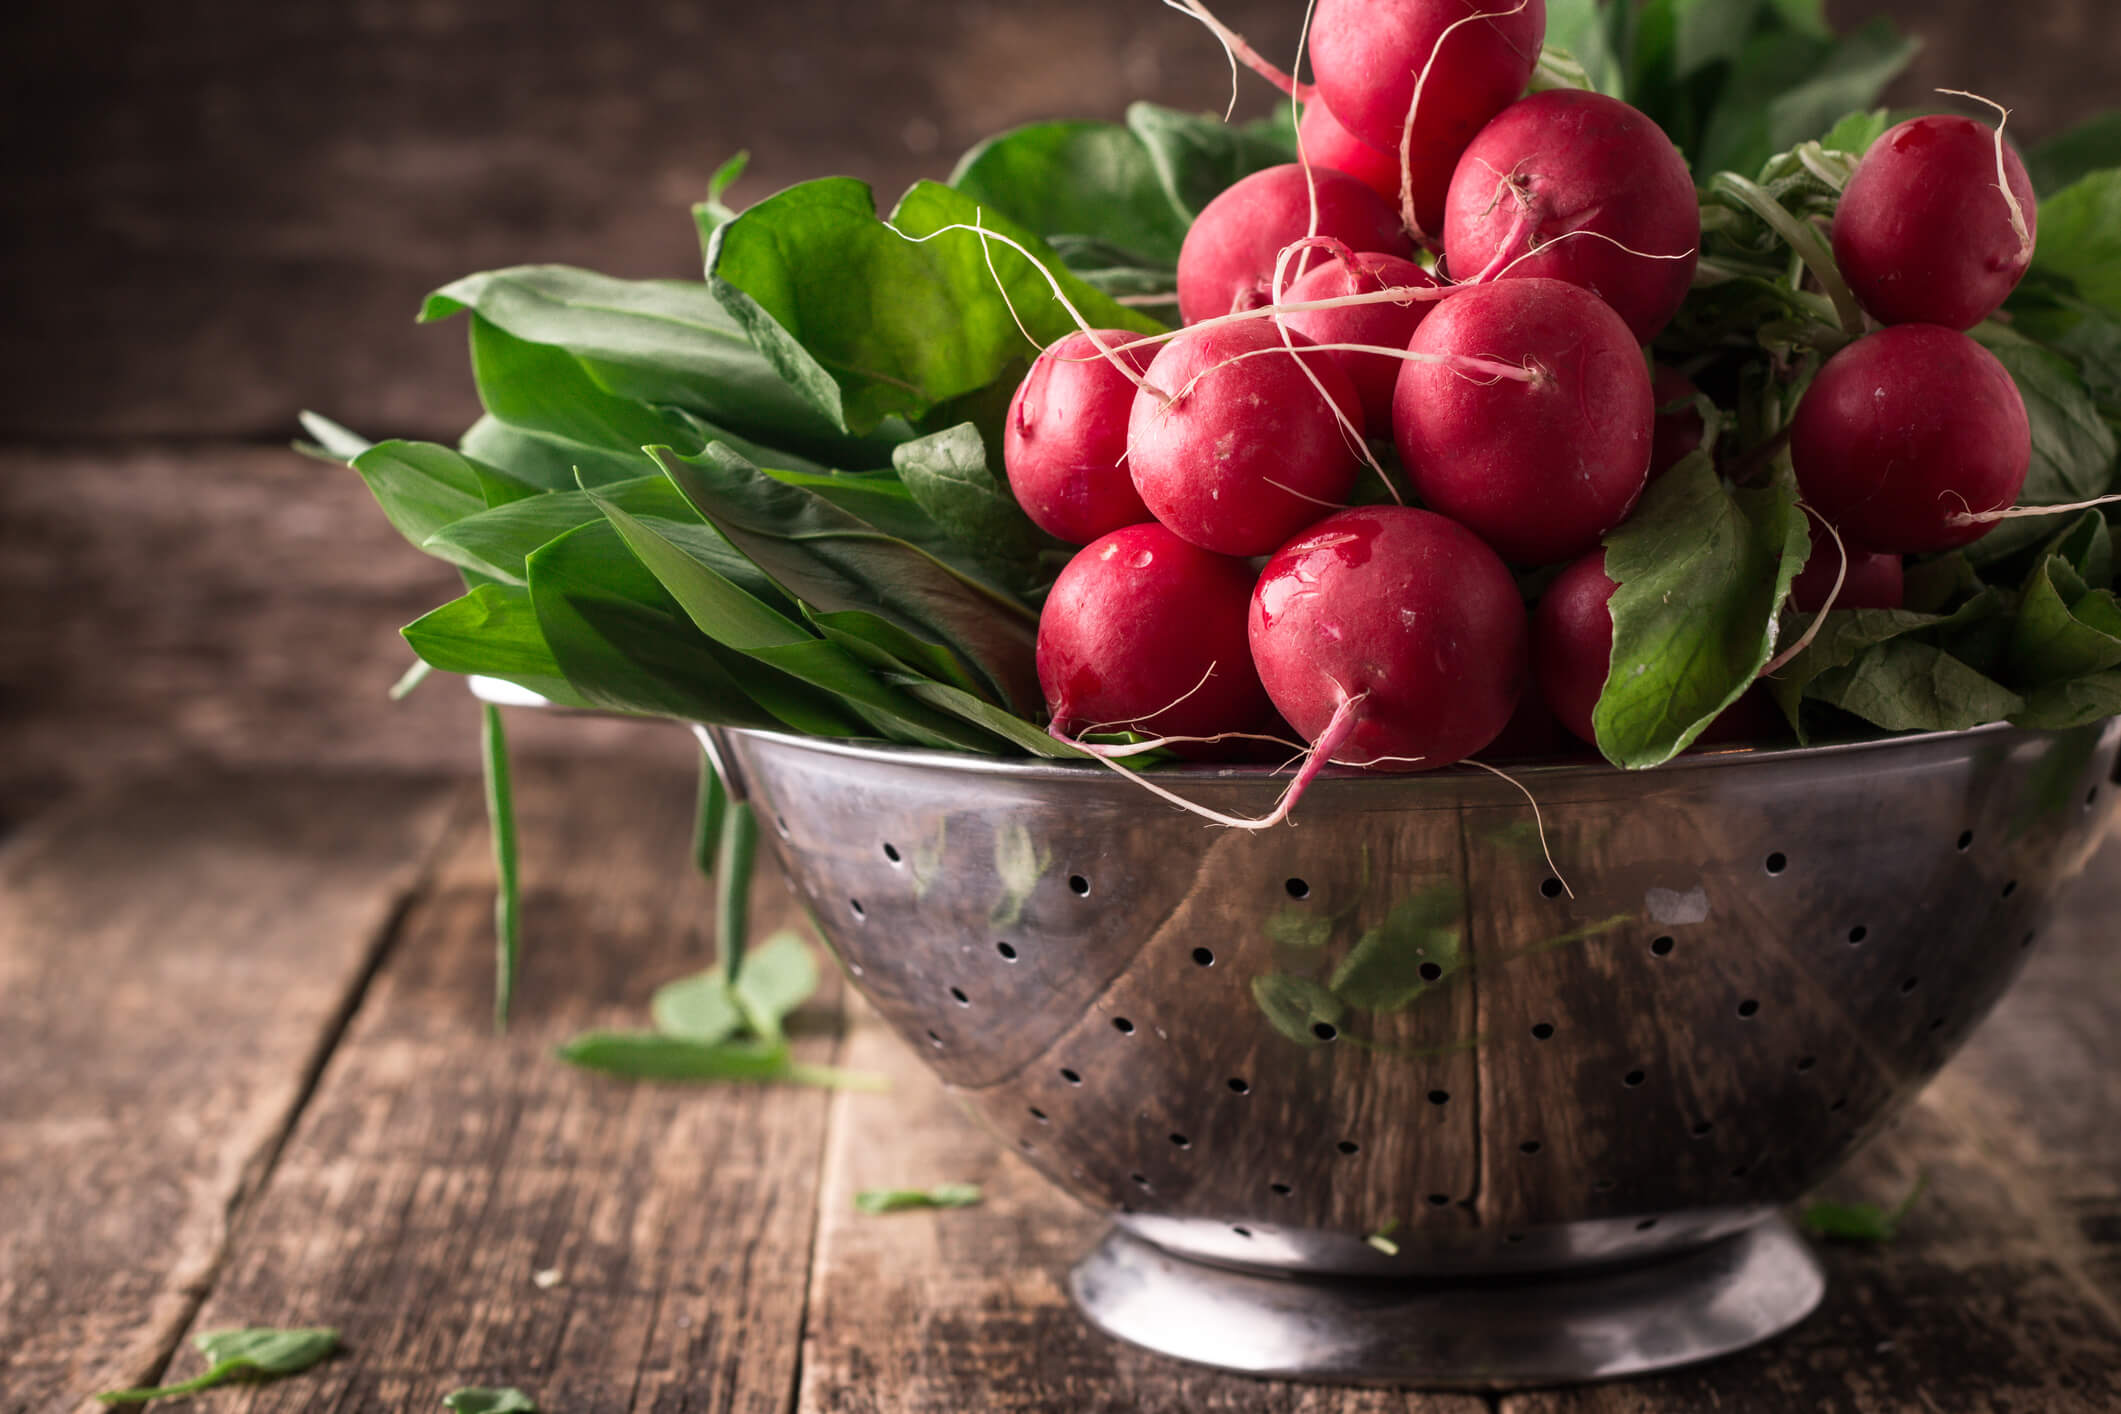 Spring vegetables and fruits: radishes